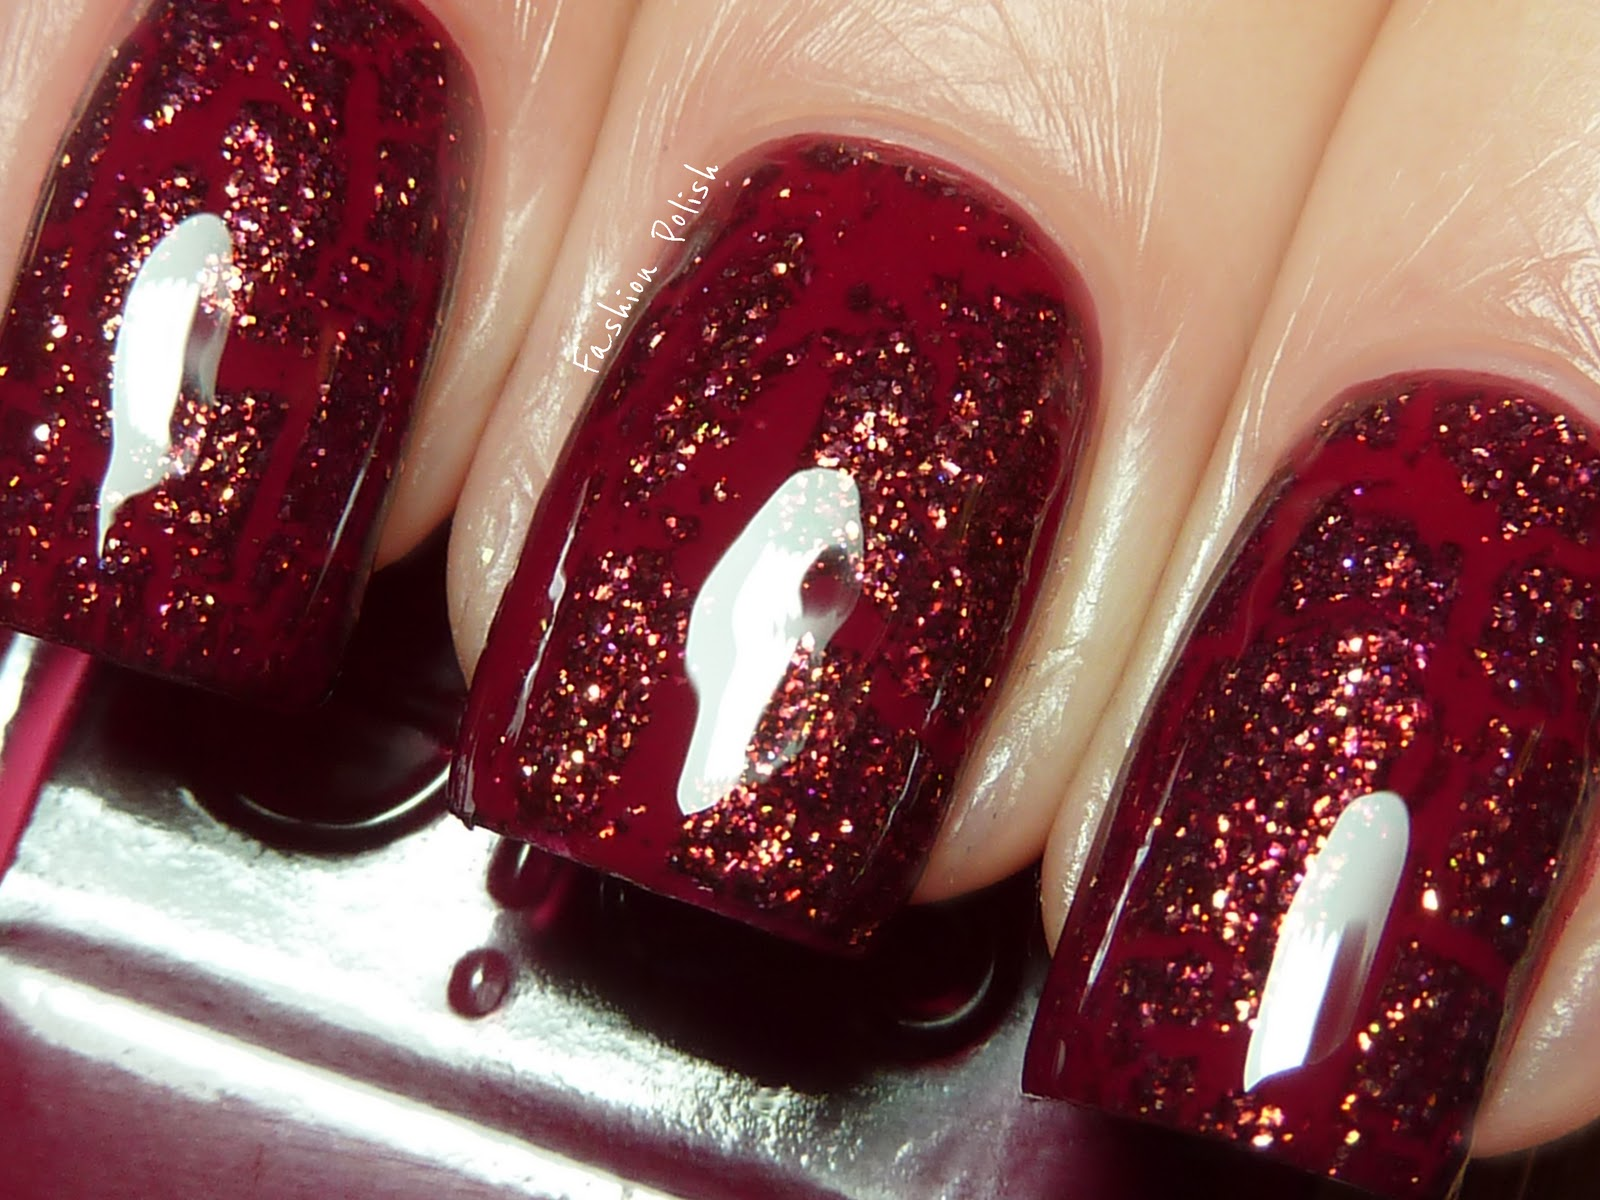 Delighted Essie Mini Nail Polish Tall Home Remedy For Nail Fungus Vinegar Regular Presto Gel Nail Polish Makeup And Nail Polish Games Young Best Nail Art Designs For Short Nails PurpleWhat Is The Best Brand Of Gel Nail Polish Red Crackle Nail Polish   Emsilog